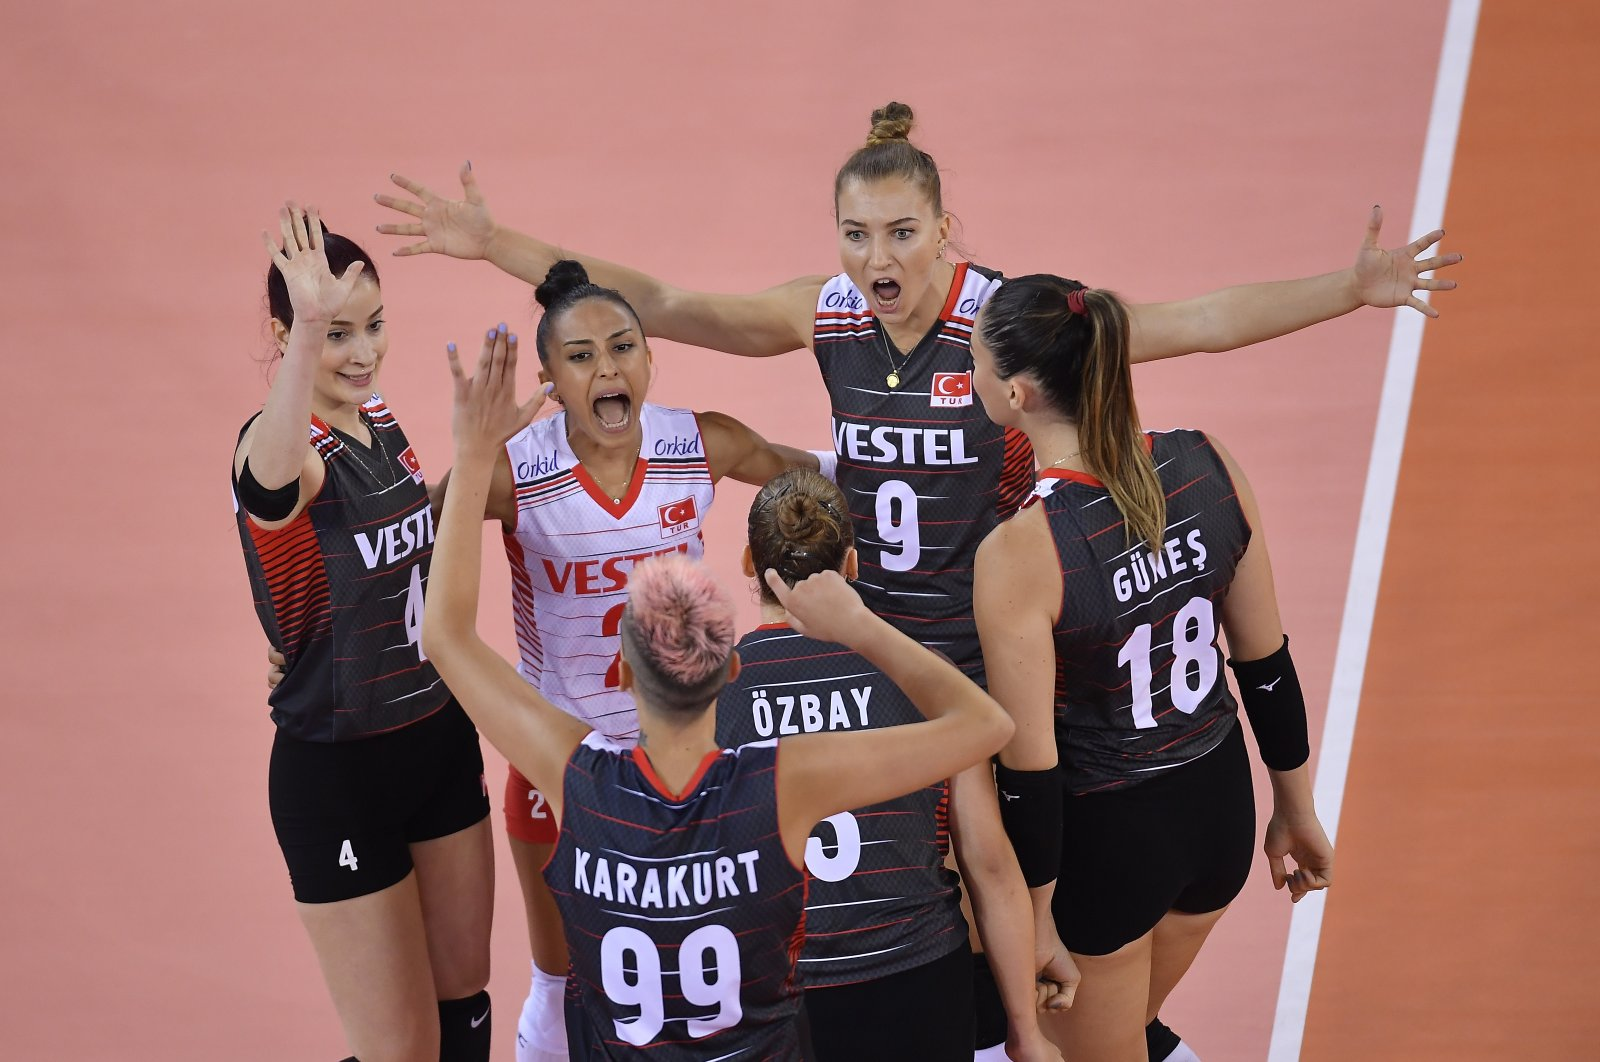 Turkey's national women's volleyball team players celebrate after scoring a point in a CEV Women's EuroVolley match against Romania, Cluj-Napoca, Romania, Aug. 18, 2021 (AA Photo)